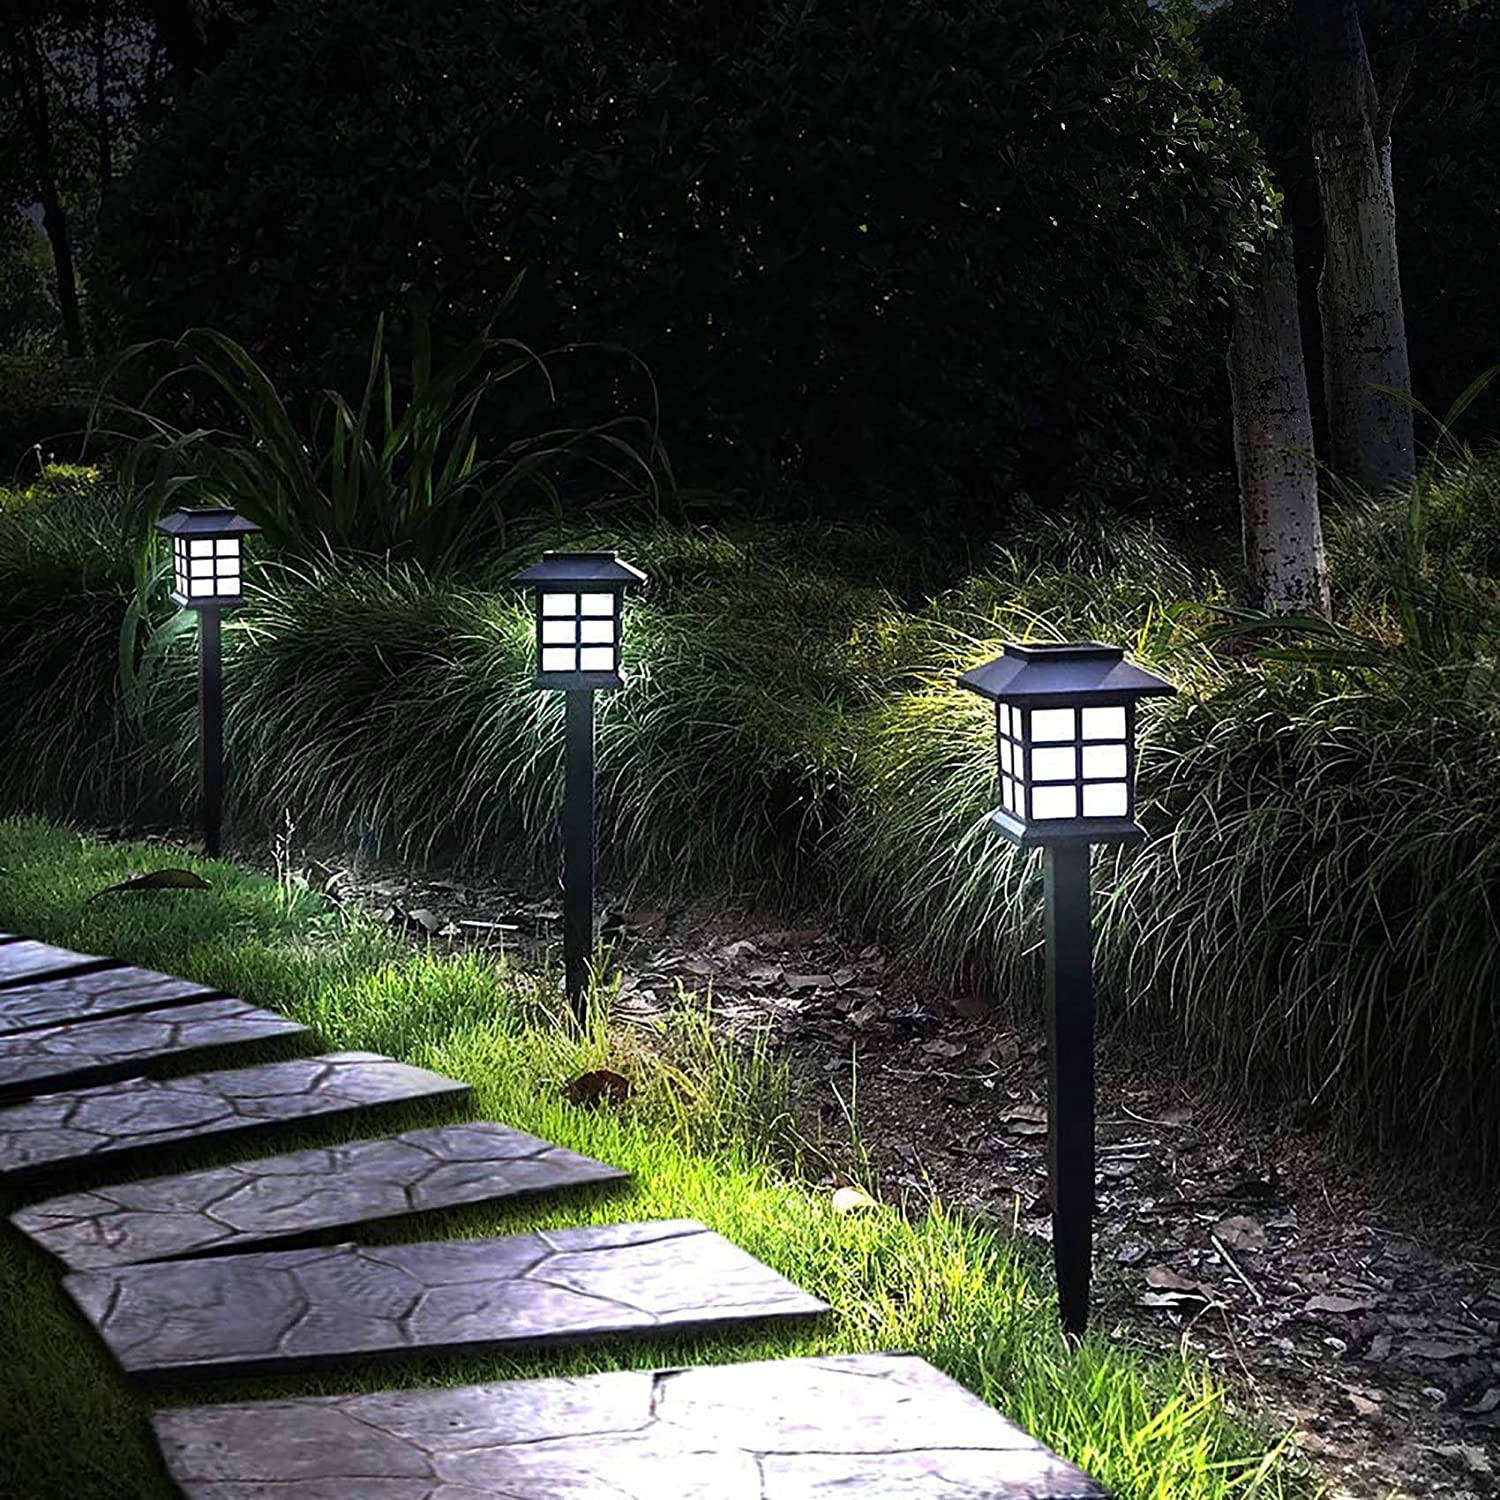 Otdair Solar Path Lights Outdoor - Waterproof LED Solar Pathway Lights Outdoor for Yard, Garden, Path, Landscape, Patio, Walkway, 12 Pack